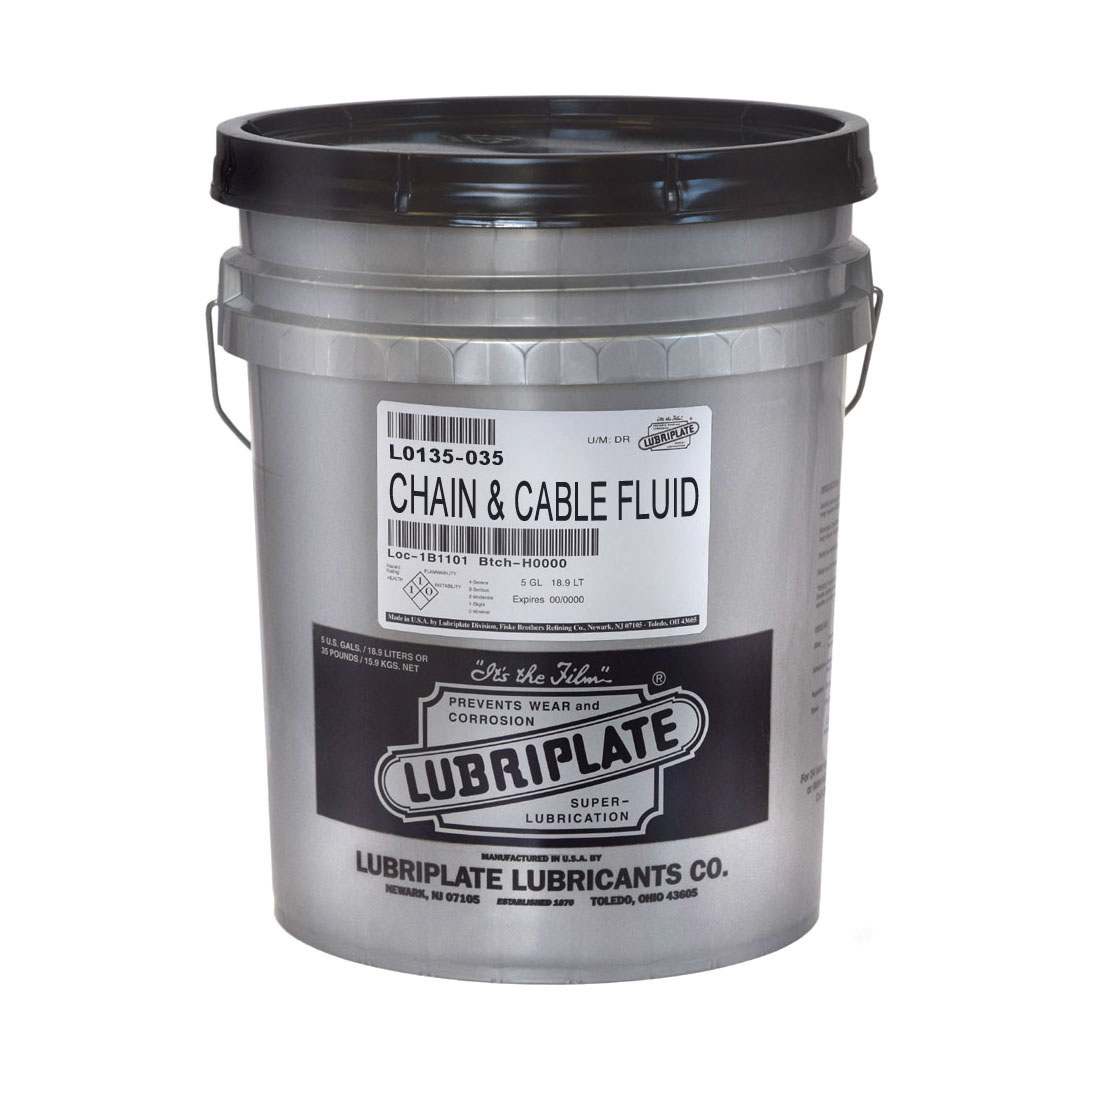 Lubriplate® L0135-035 Industrial Strength Penetrating Chain and Cable Lubricant, 35 lb Pail, Liquid Form, Amber, 0.93